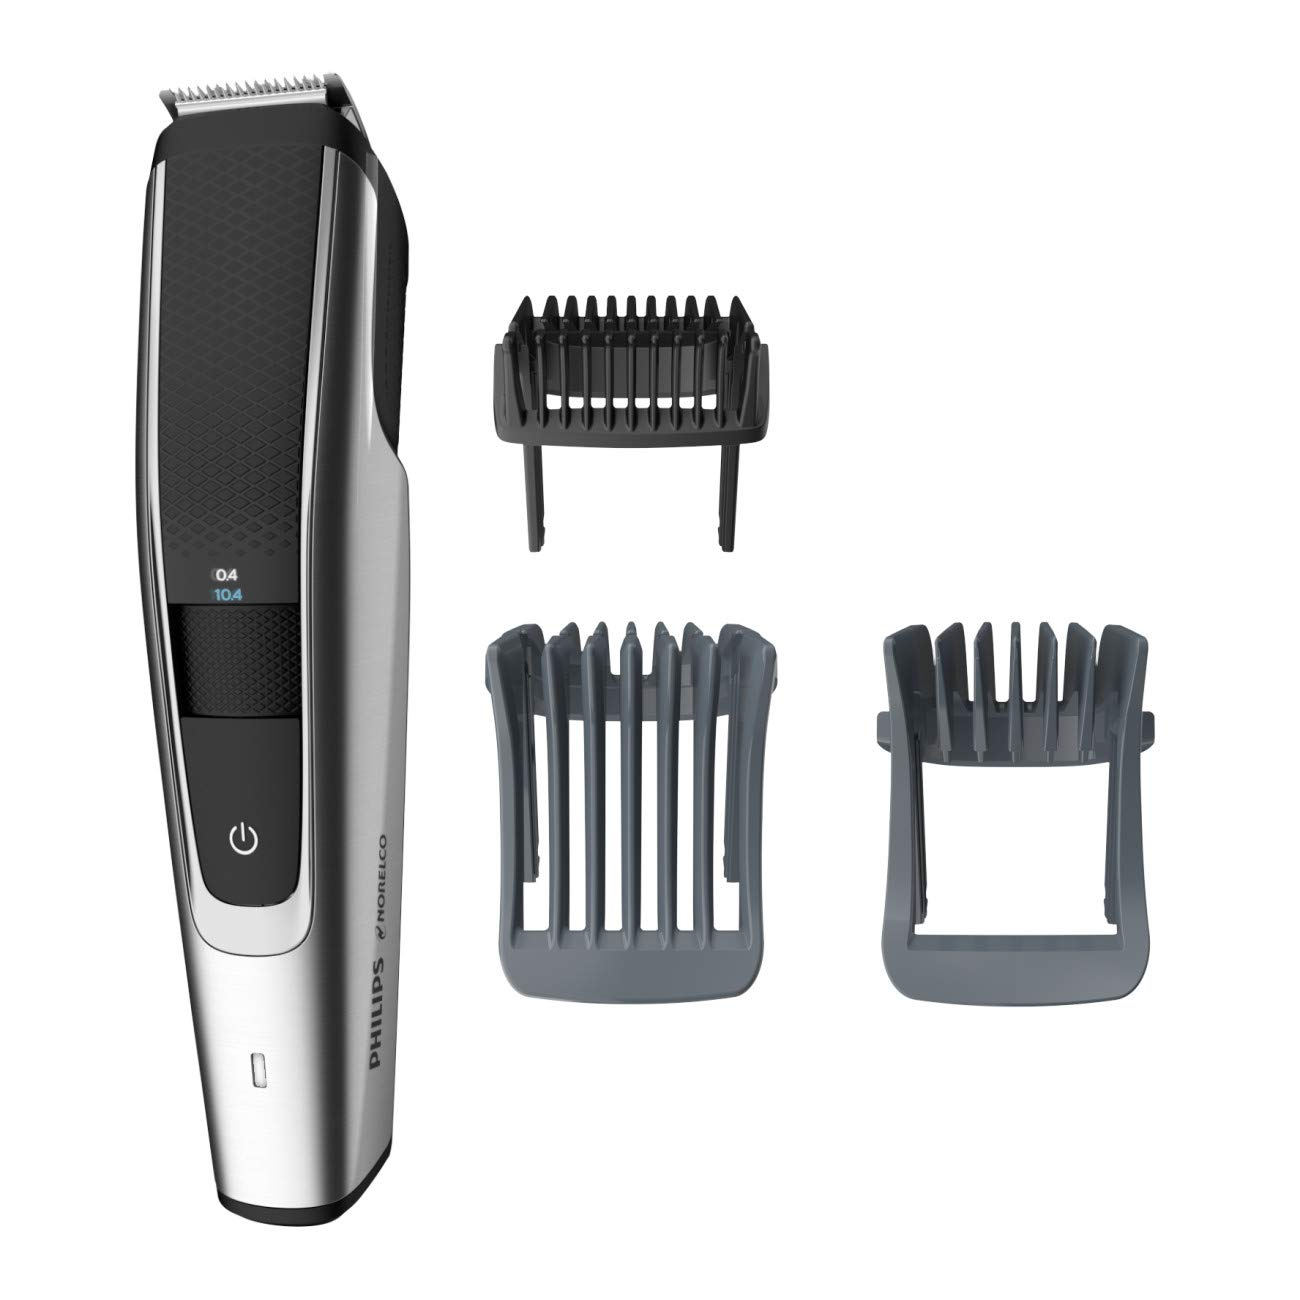 Amazon Com Philips Series 5000 Norelco Electric Cordless One Pass Beard And Stubble Trimmer With Washable Feature Black And Silver Beauty